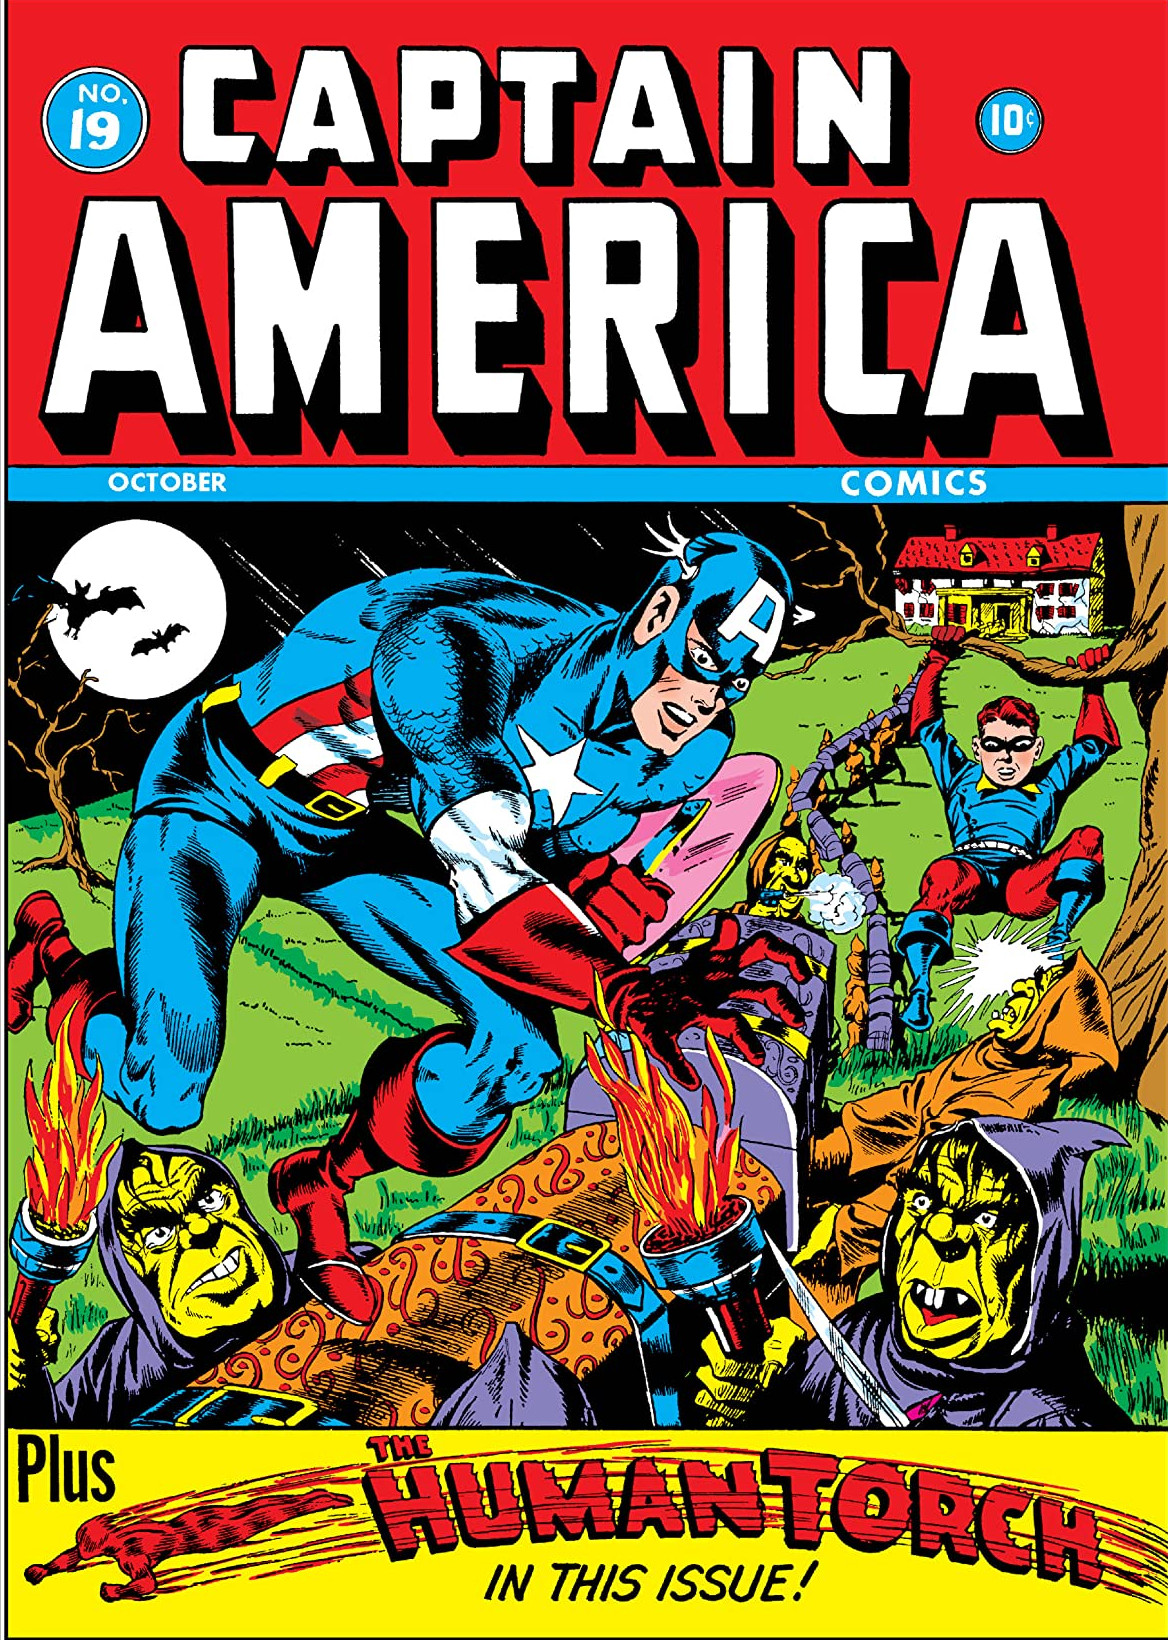 Captain America Comics Vol 1 19